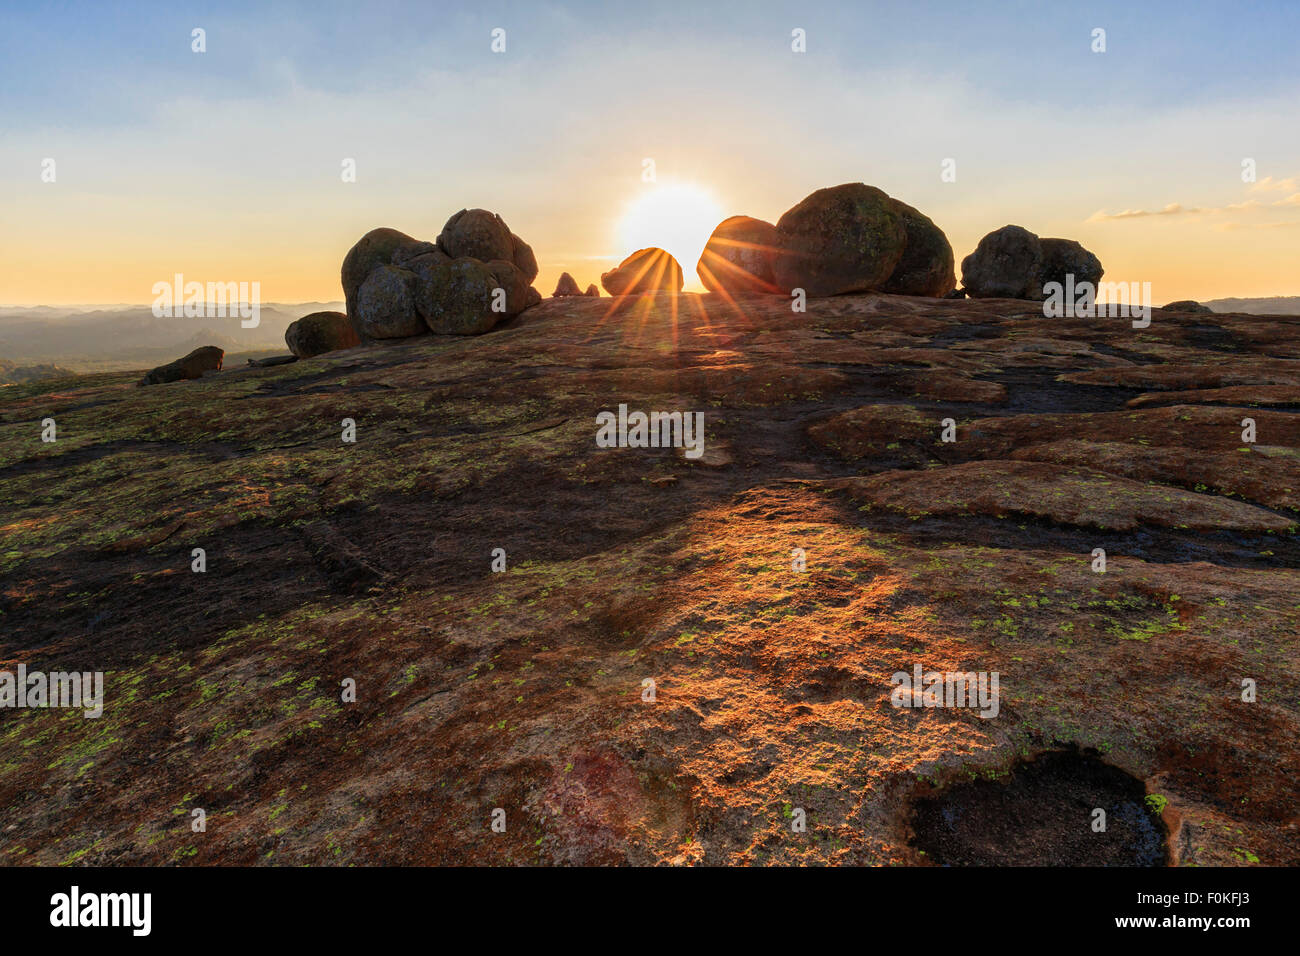 Africa, Zimbabwe, Matobo National Park, Rock formation with tomb of Cecil Rhodes at sunset - Stock Image